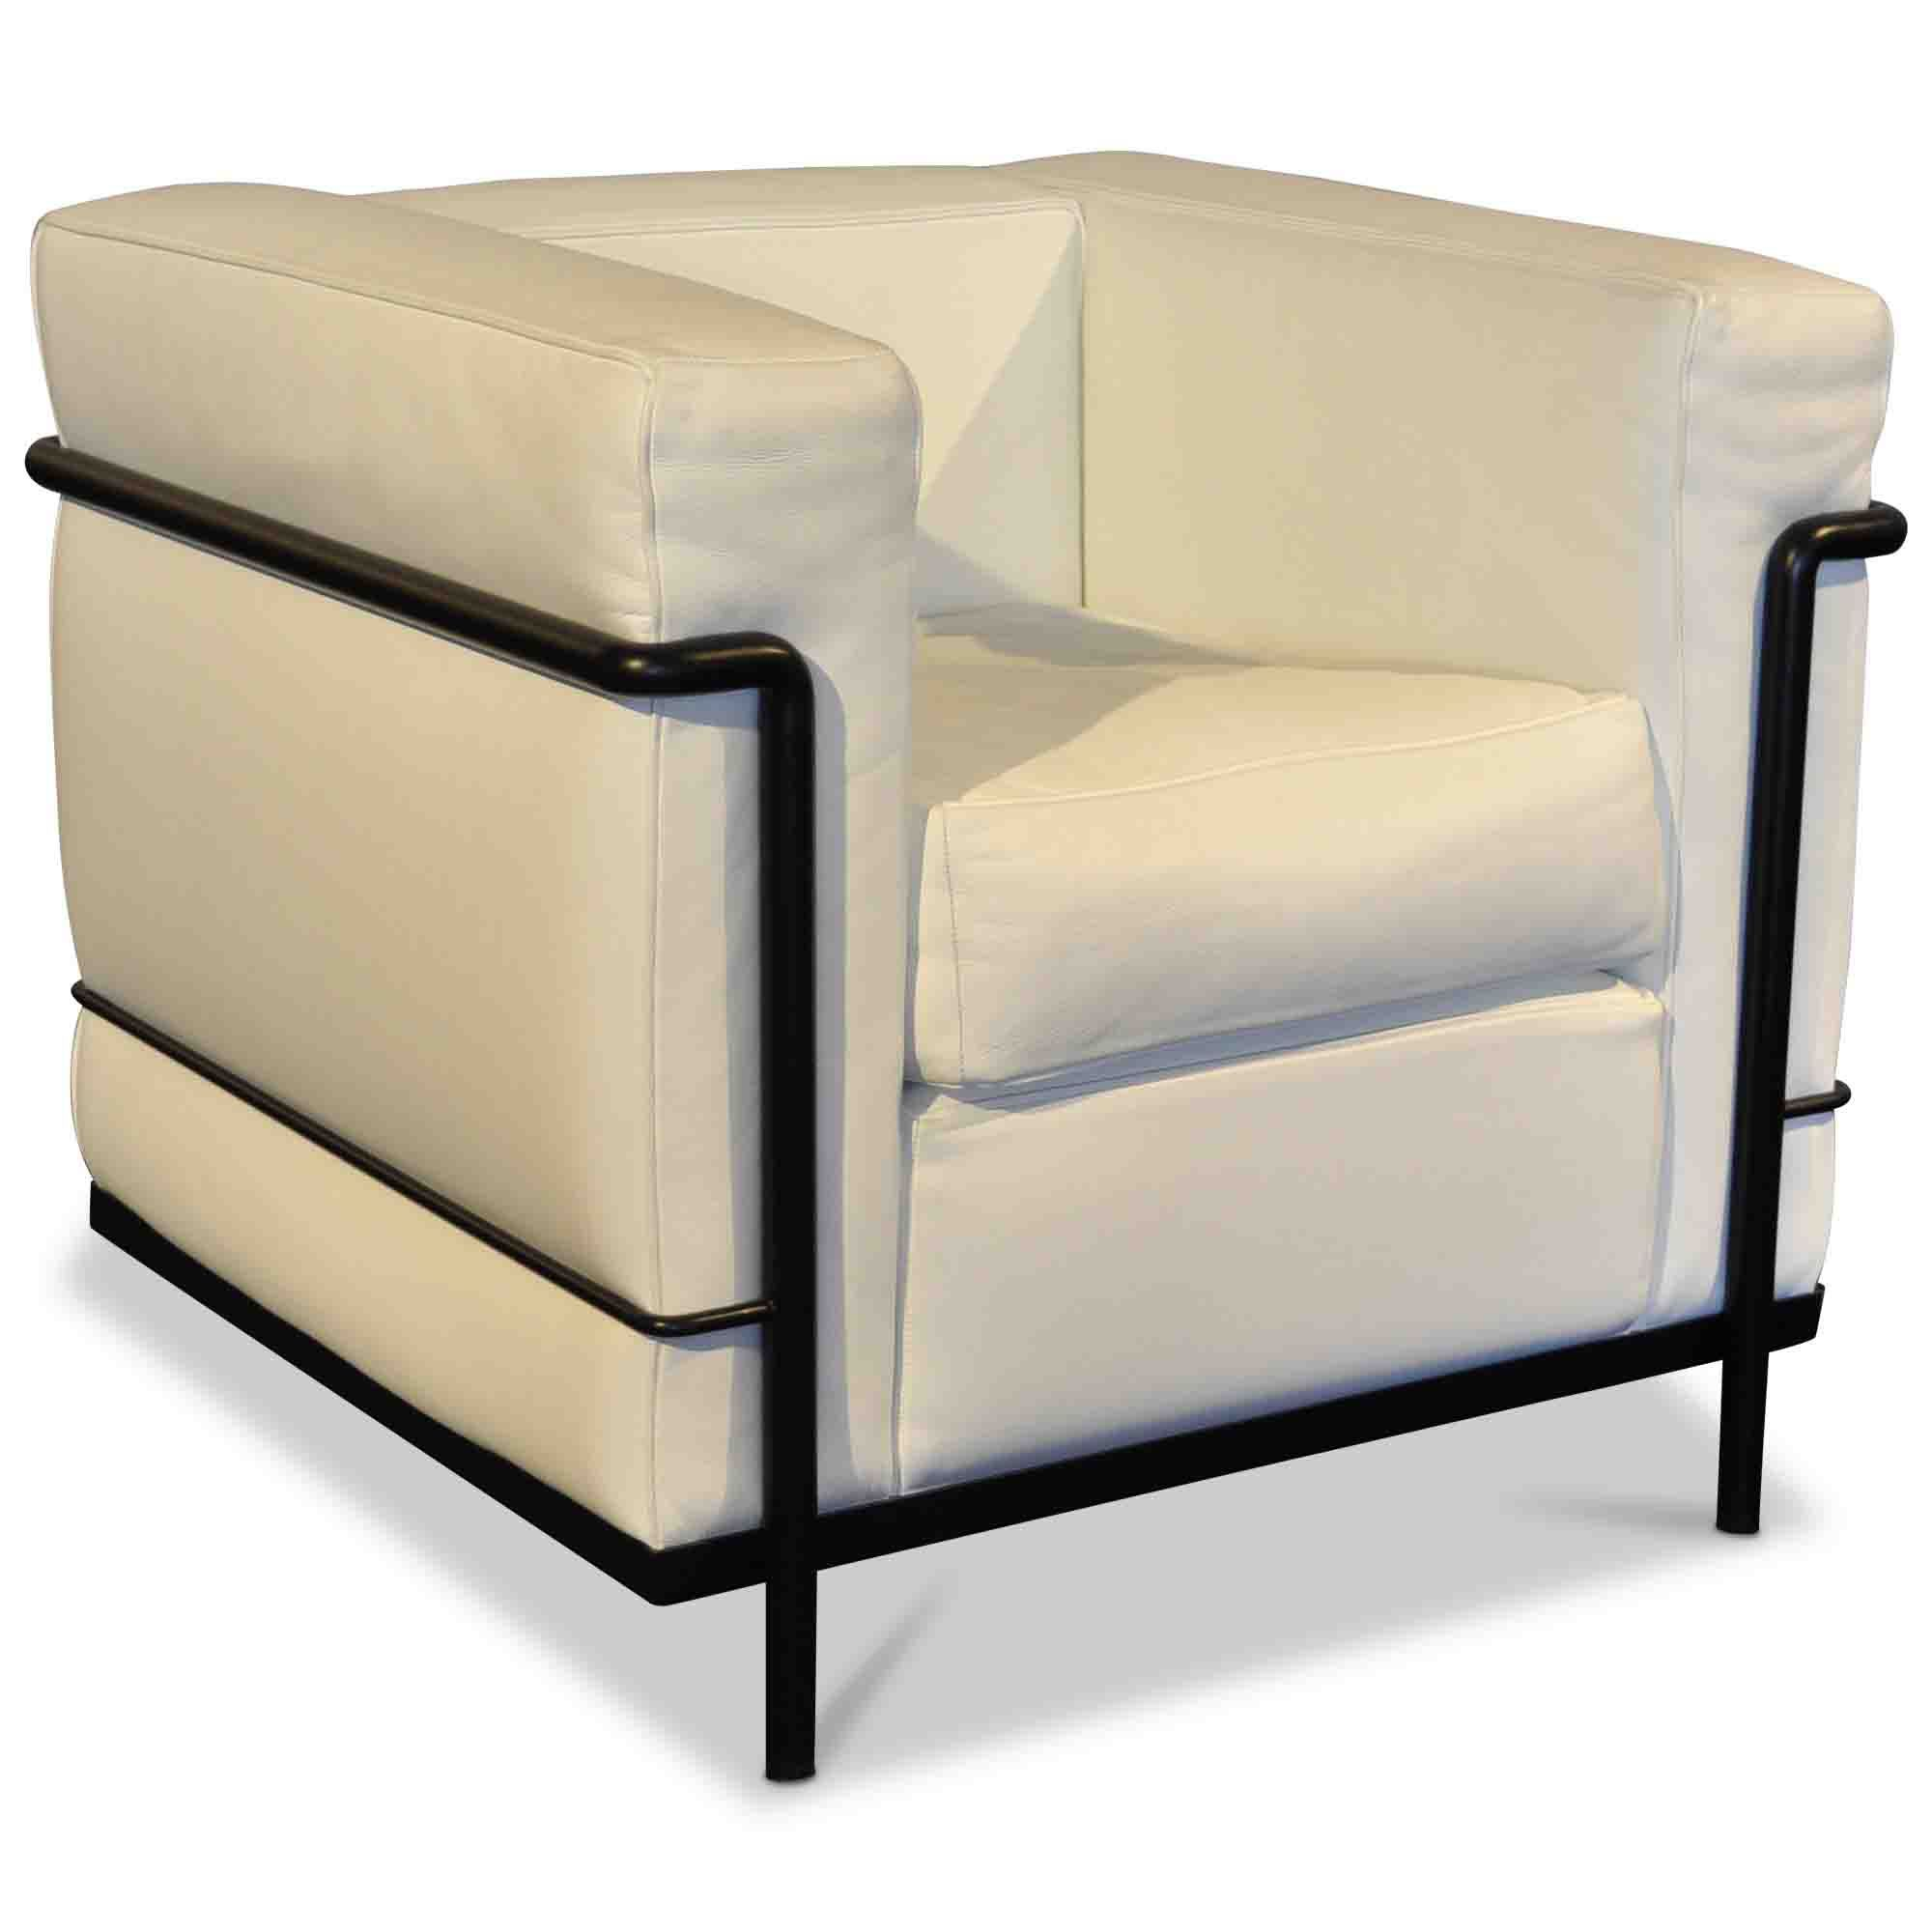 Lc2 Sessel Le Corbusier P Jeanneret C Perriand Cassina